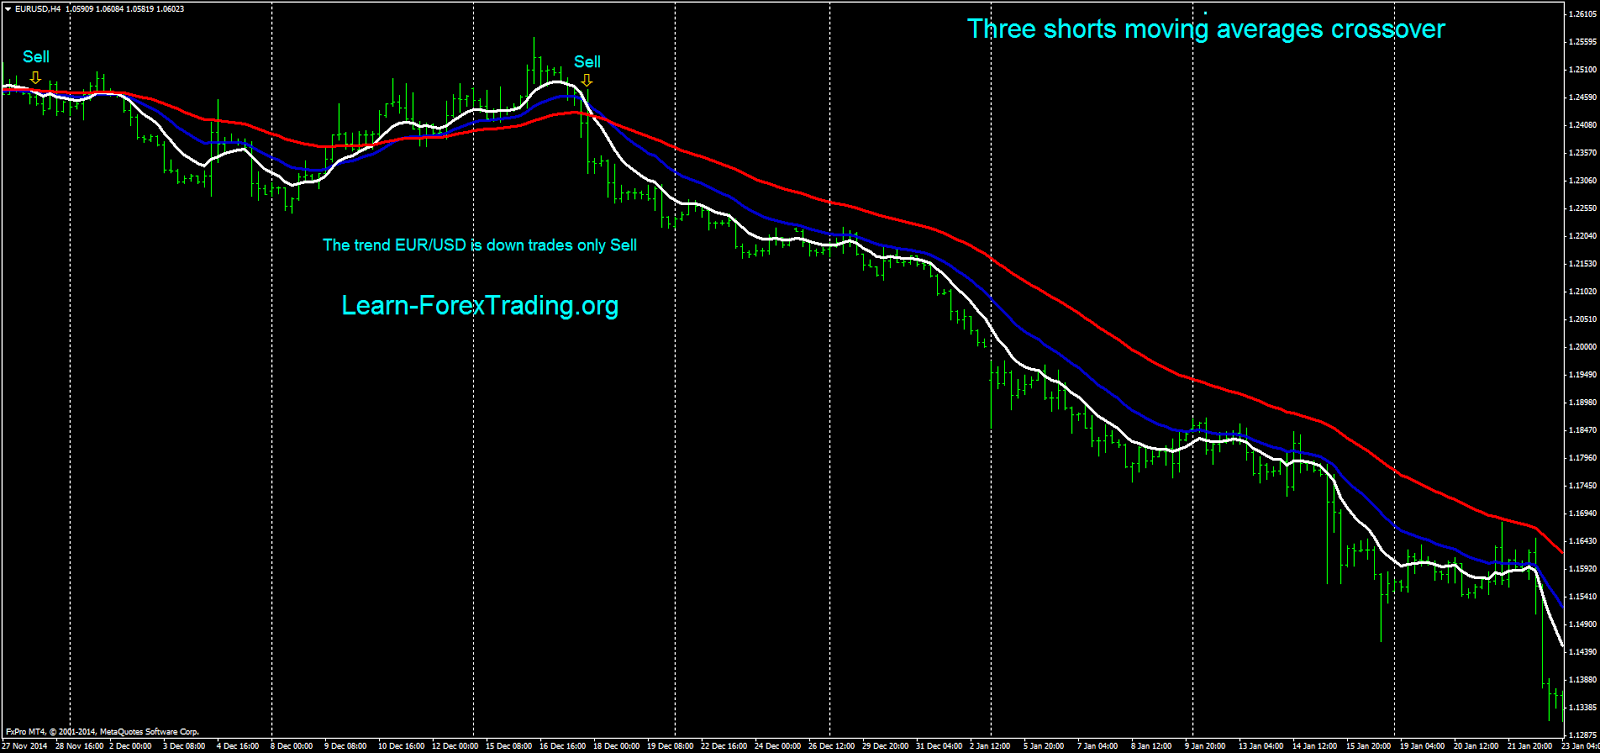 Three shorts moving averages crossover